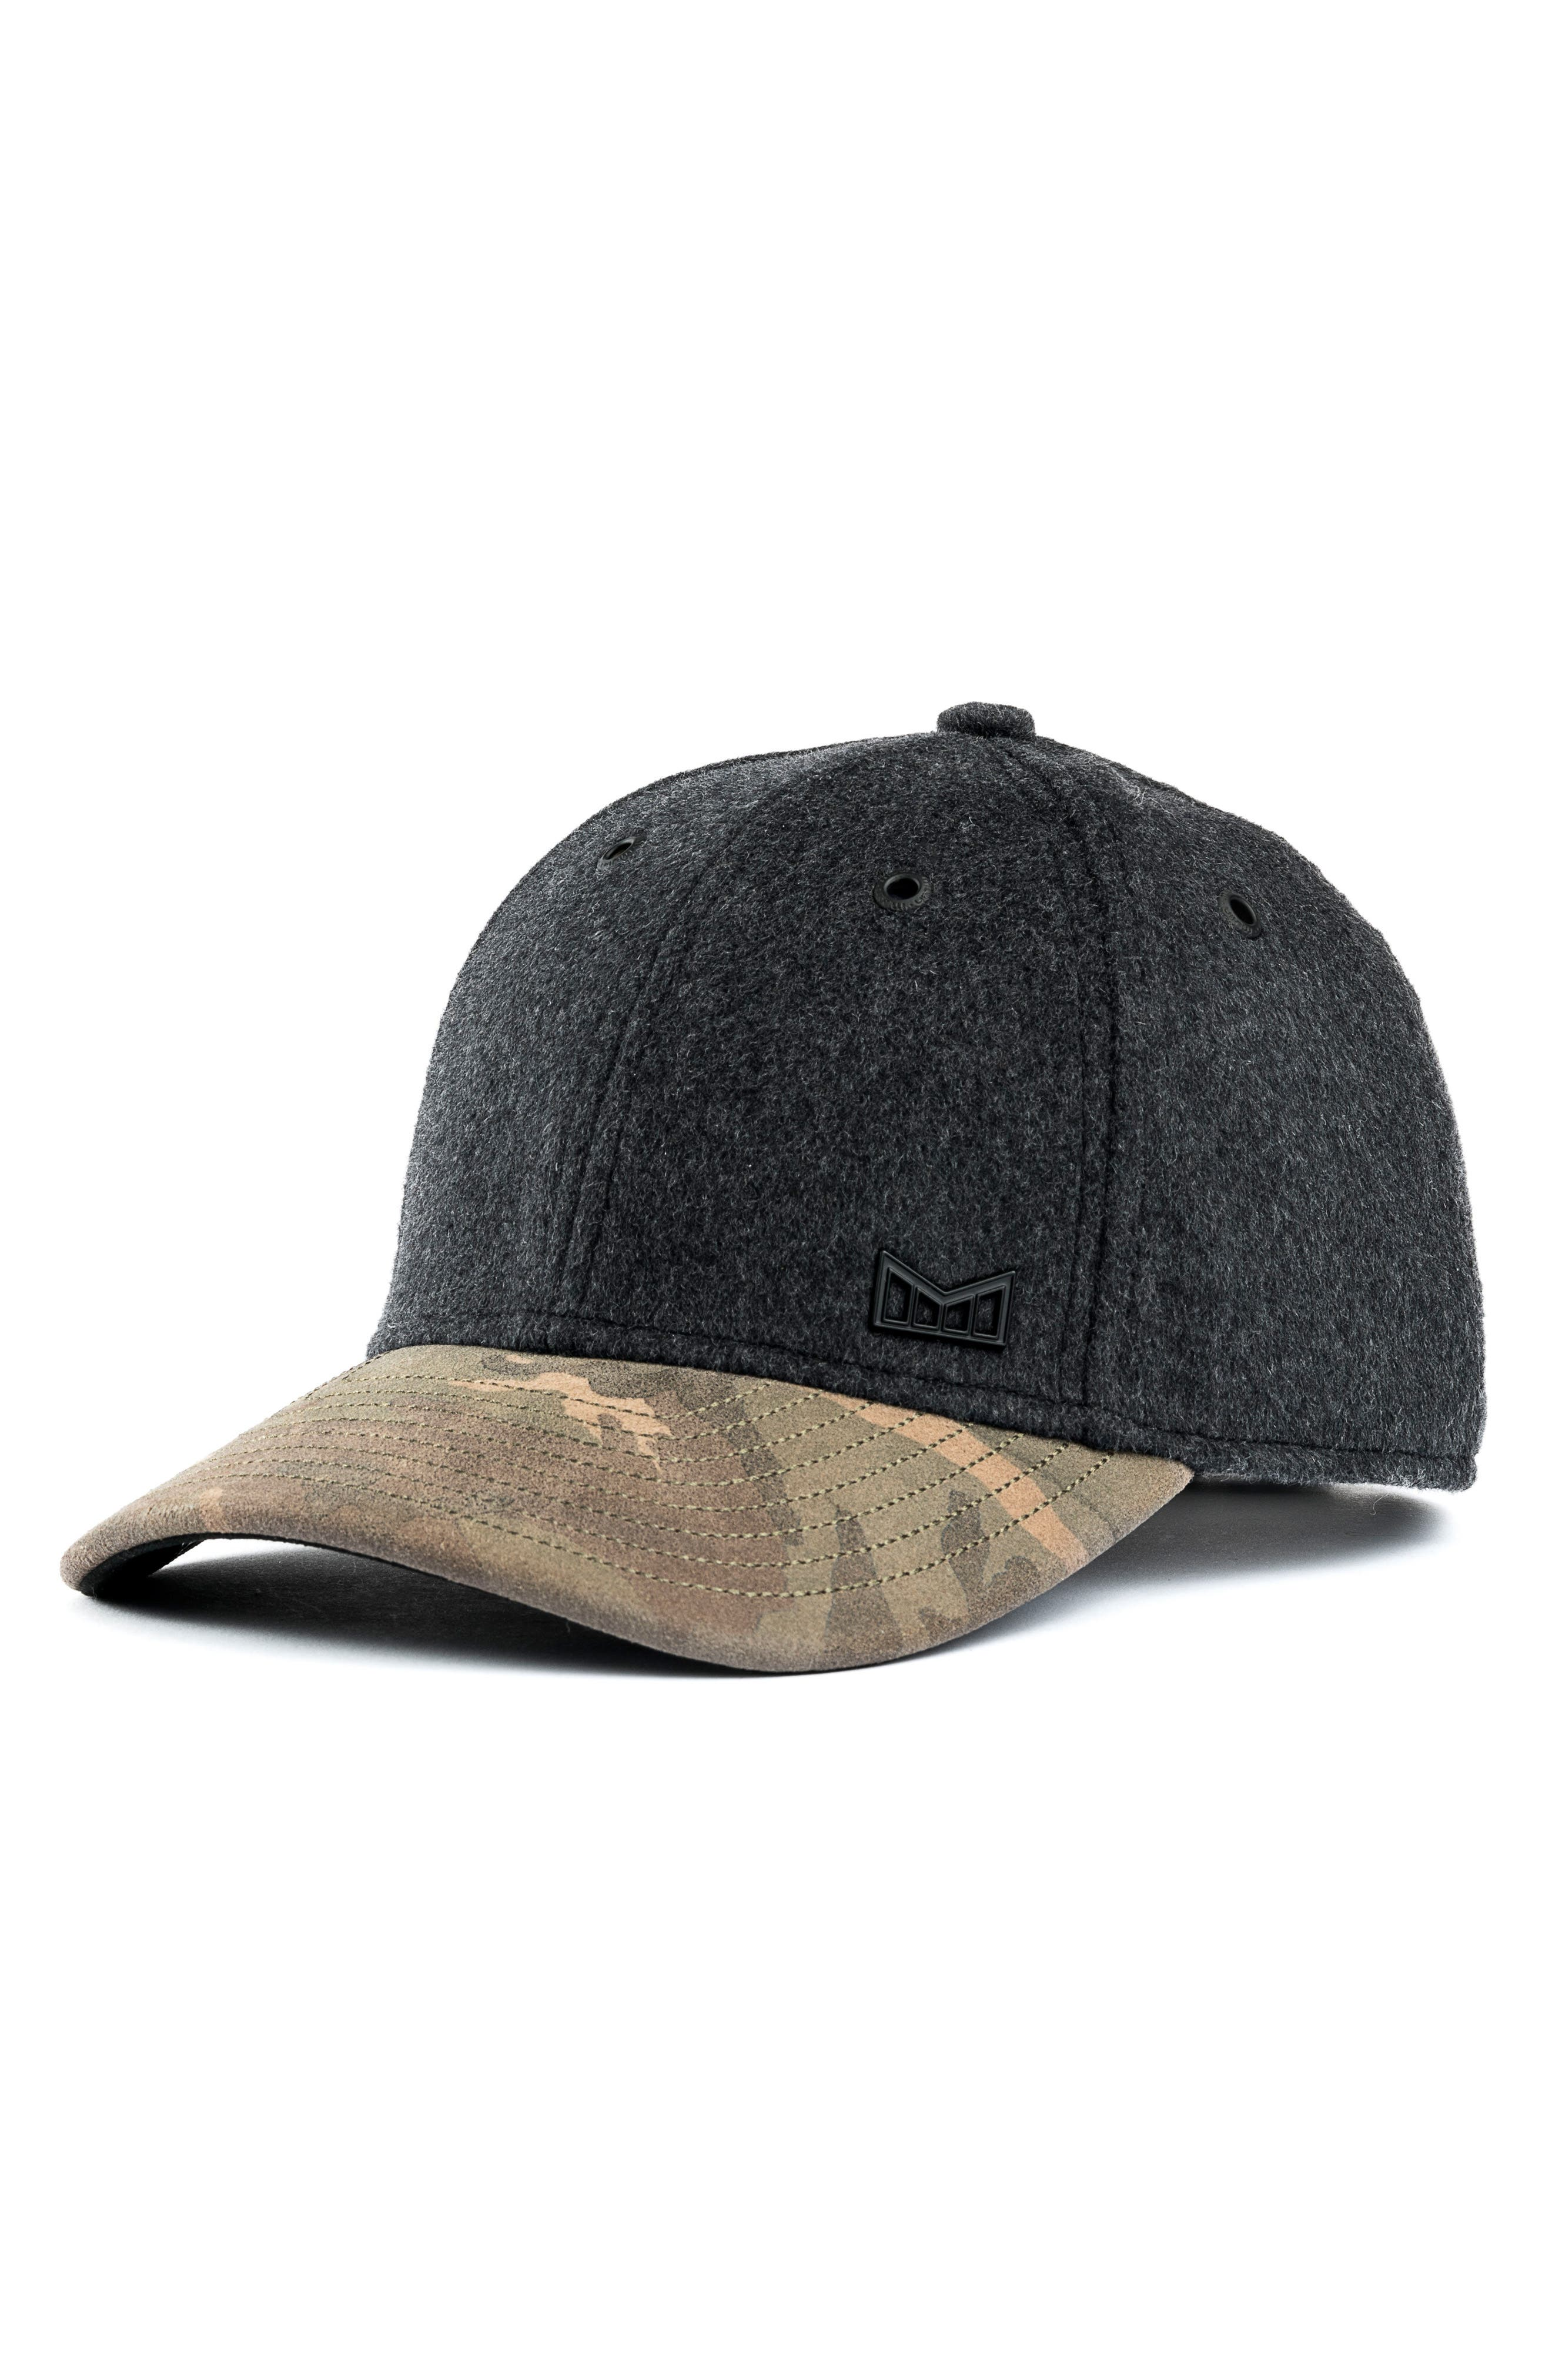 Maverick Ball Cap,                         Main,                         color, Dark Charcoal